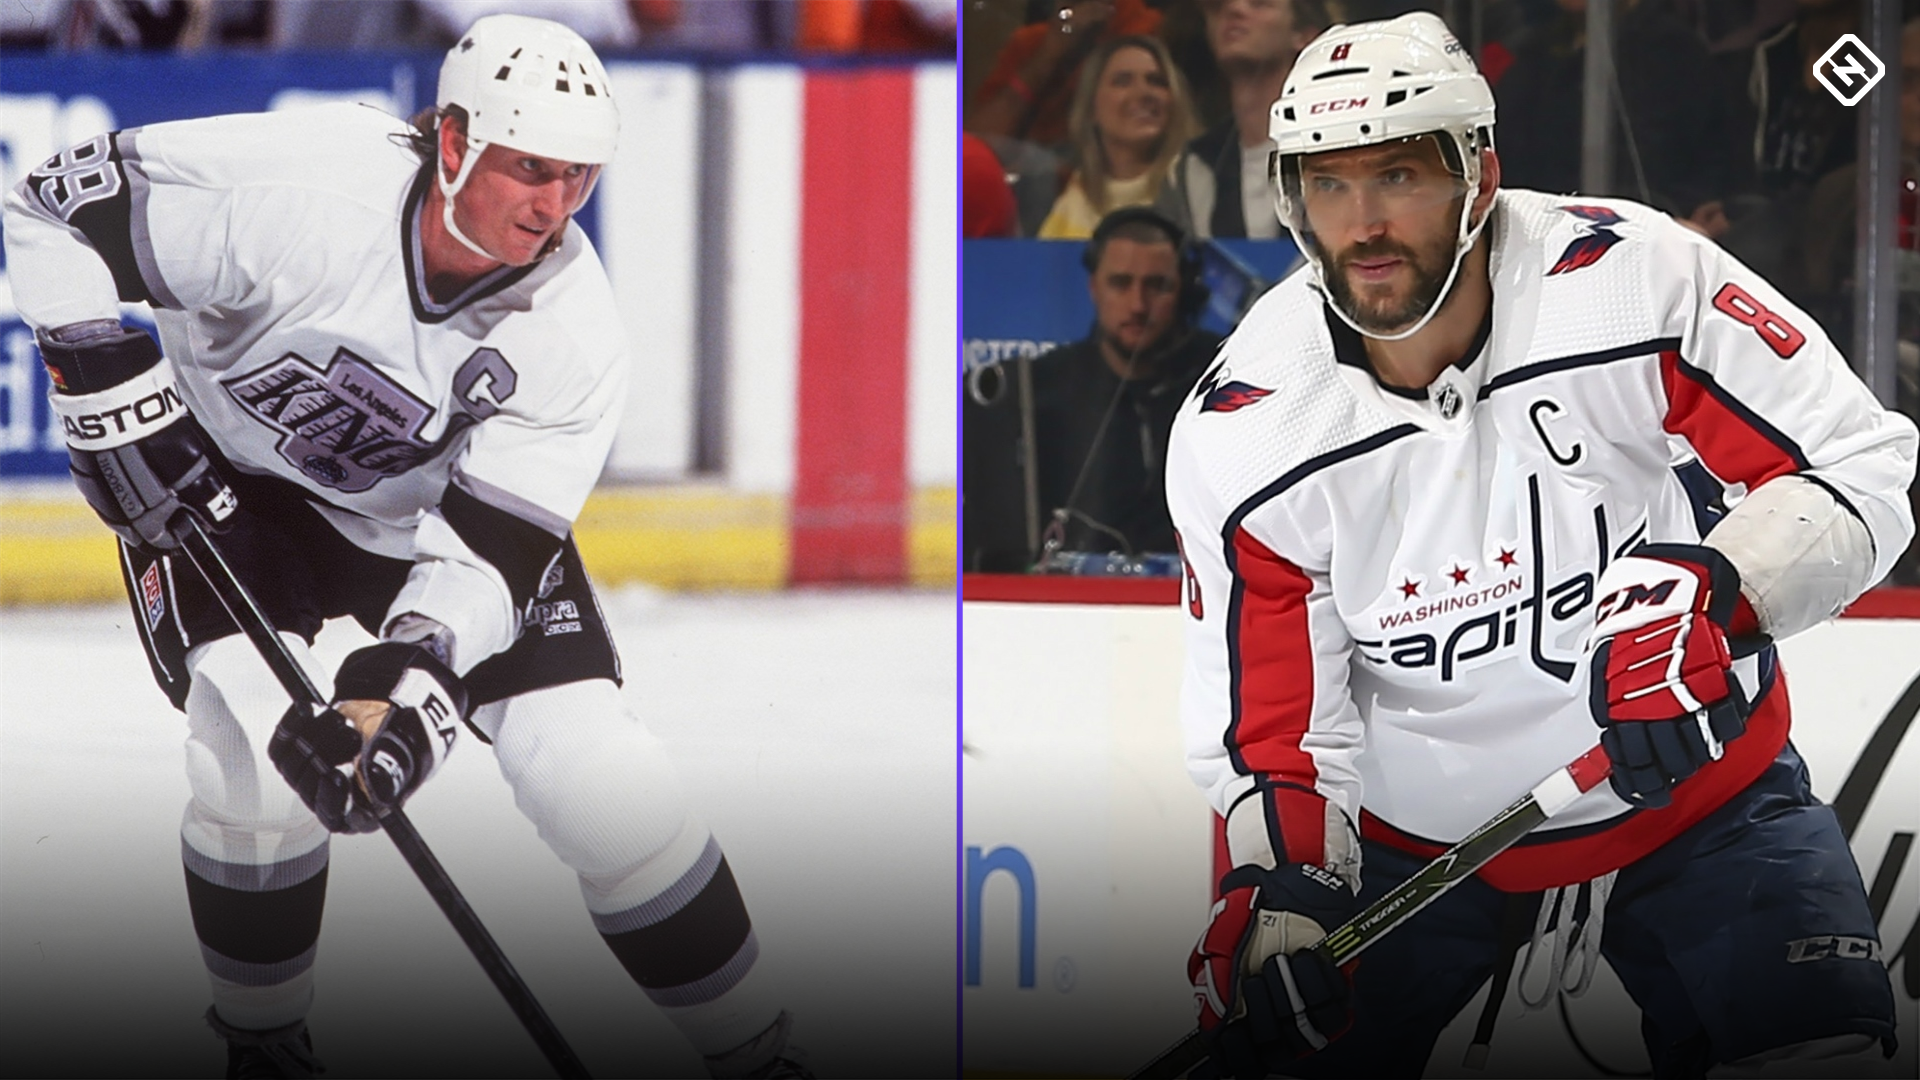 Wayne Gretzky looks forward to the day Capitals' Alex Ovechkin breaks his goals record 1